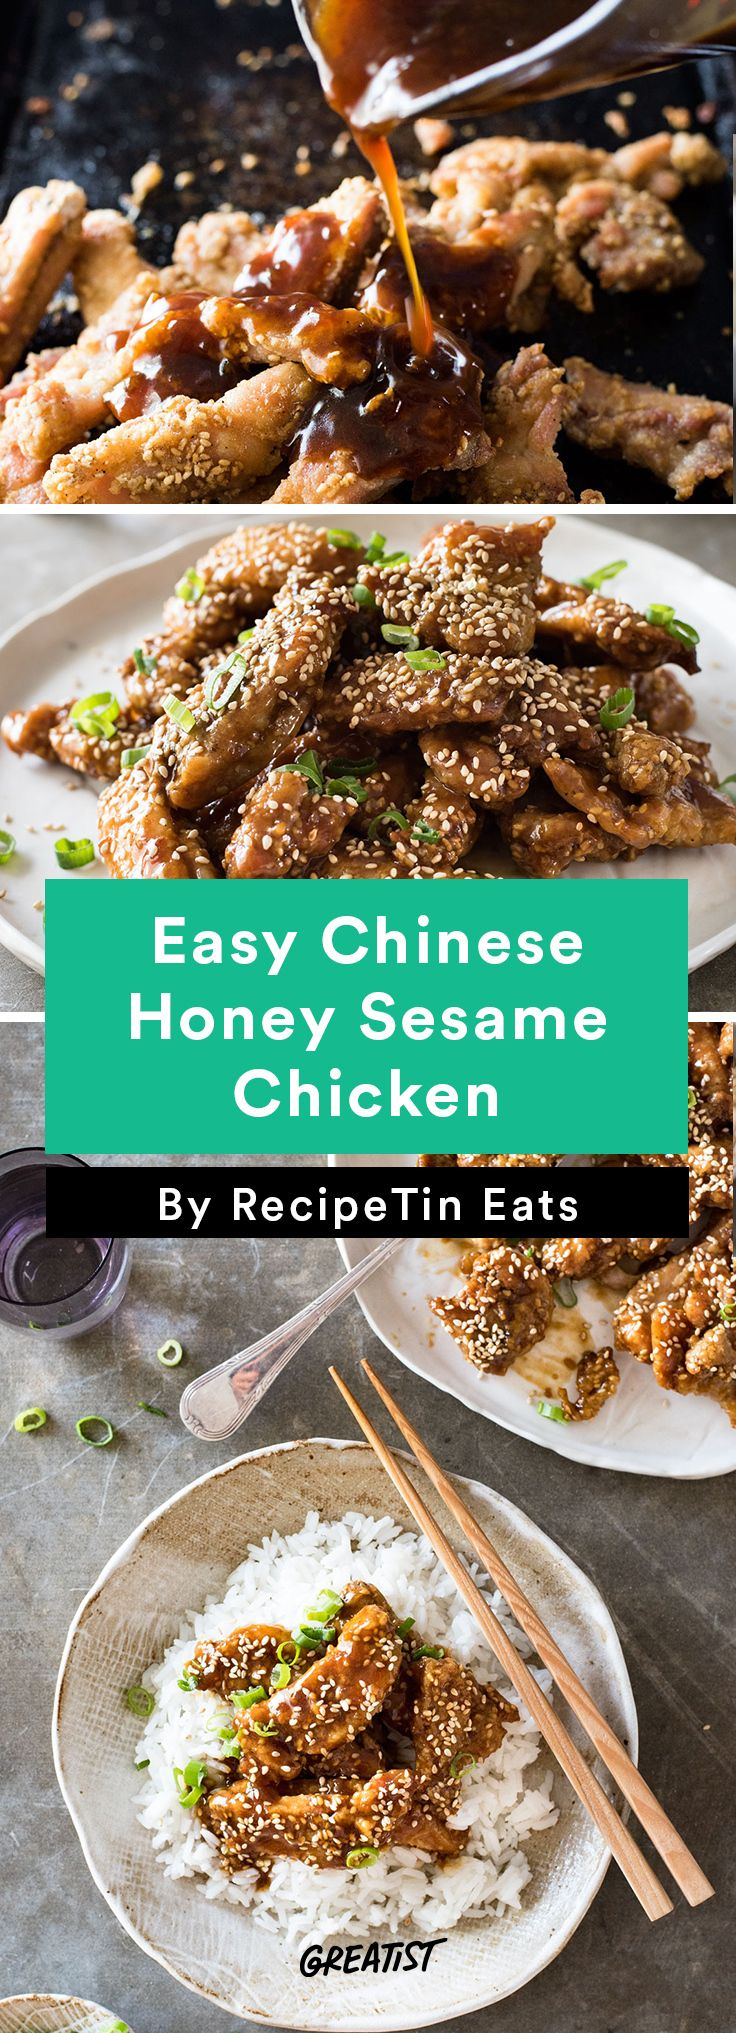 6. Easy Chinese Honey Sesame Chicken #healthy #chicken #recipes http://greatist.com/eat/easy-chicken-recipes-that-are-tasty-af